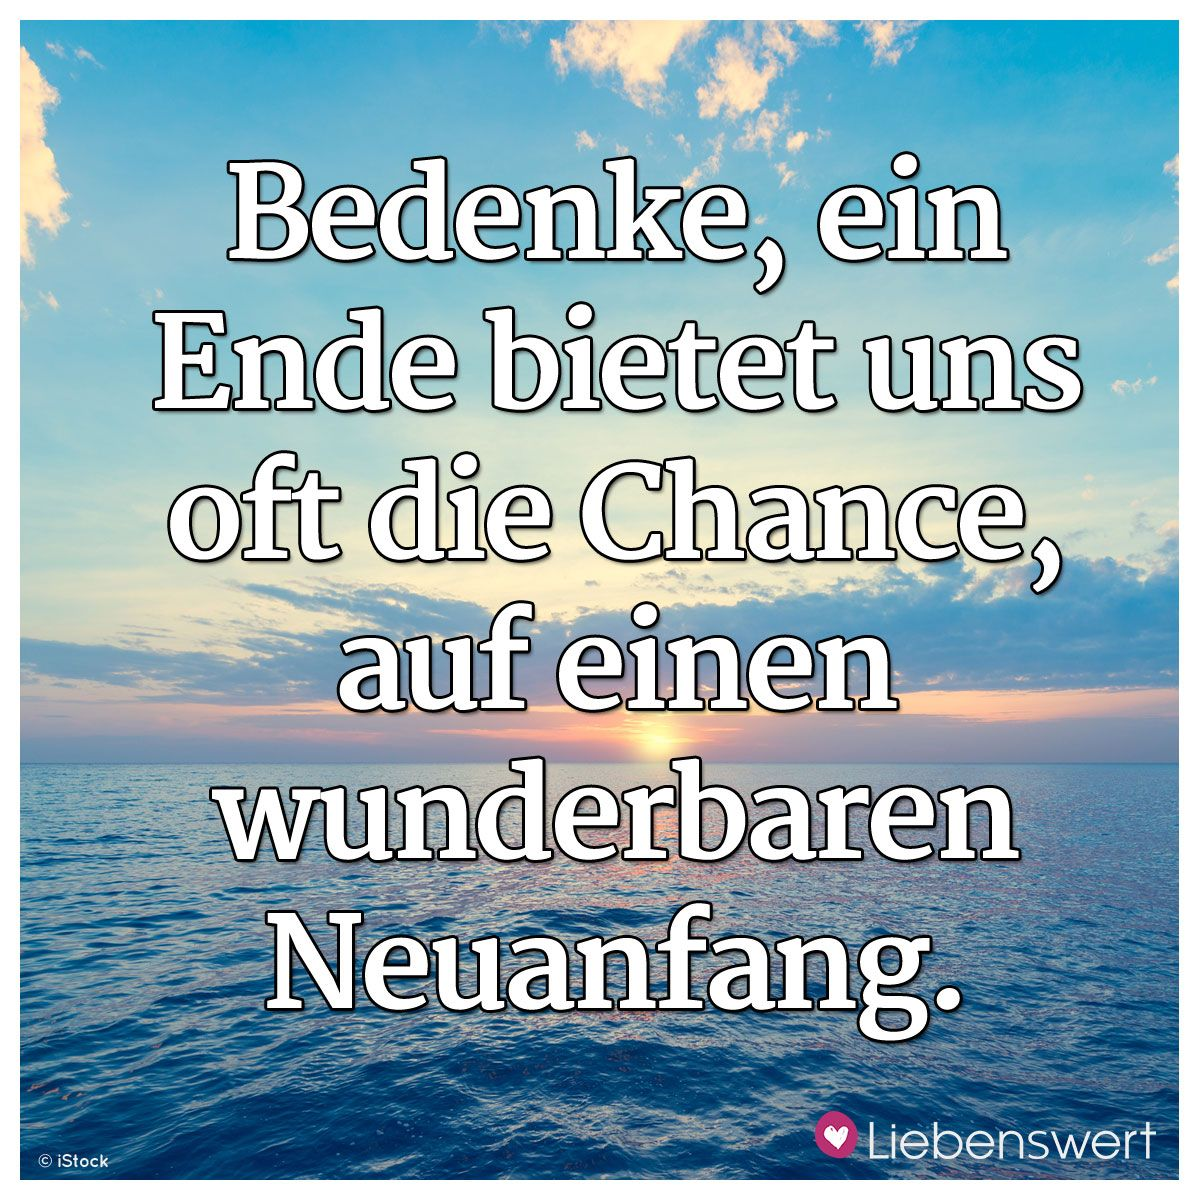 Spruch Neuanfang